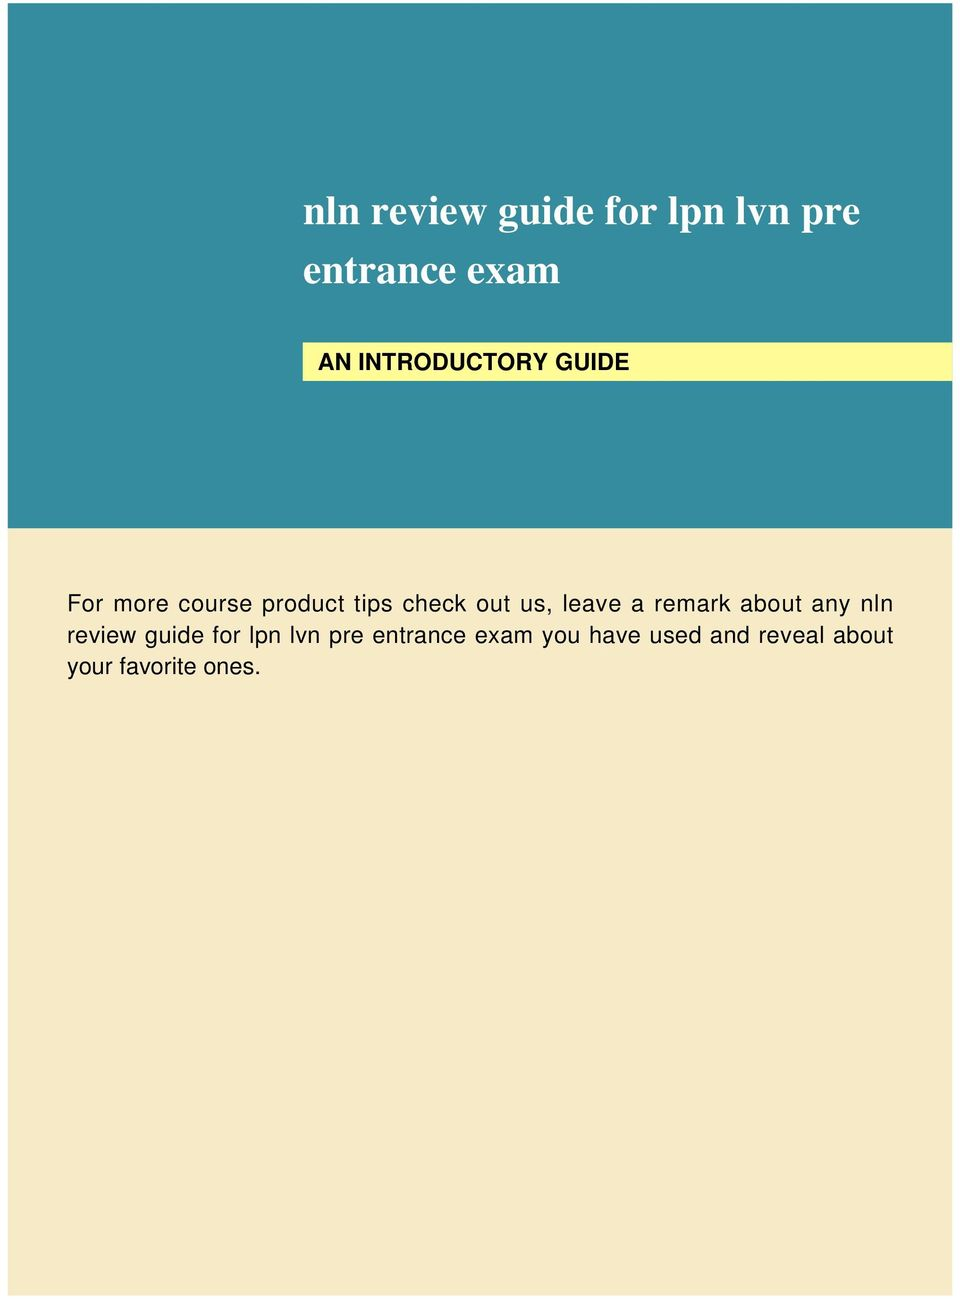 us, leave a remark about any nln review guide for lpn lvn